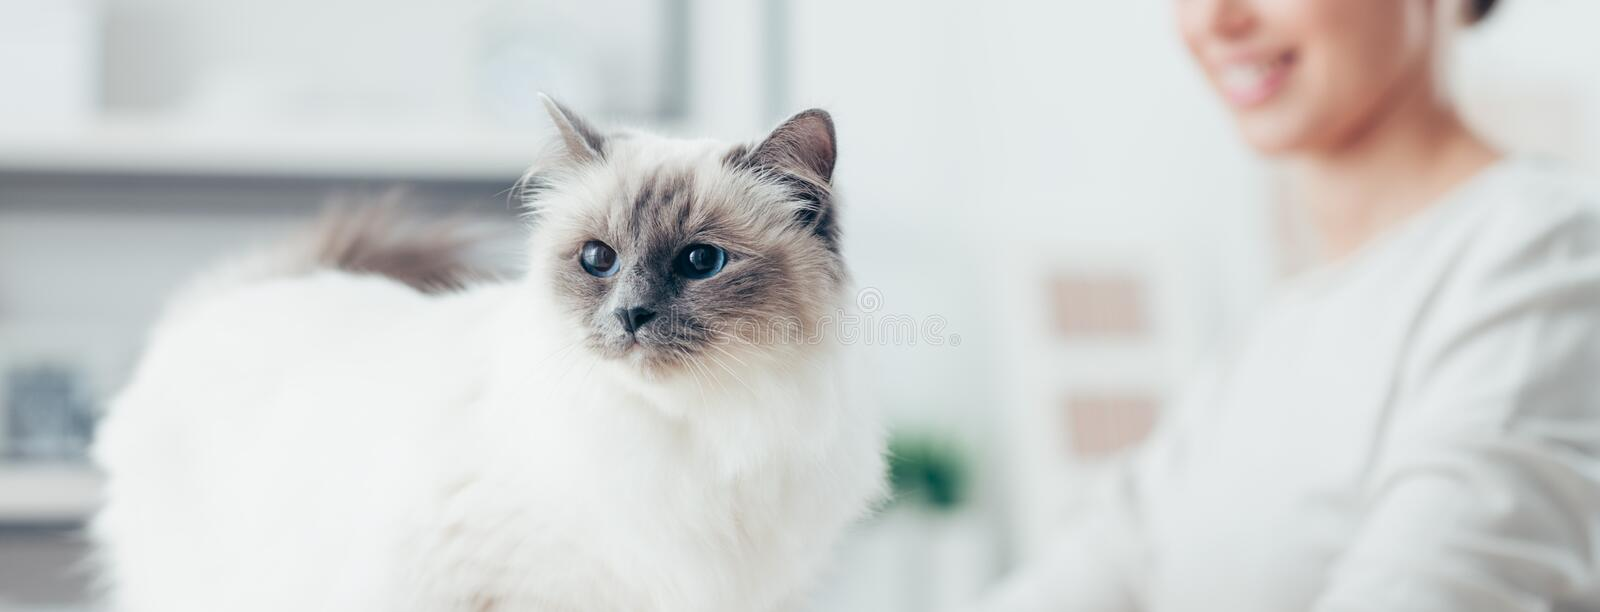 Belle pose de chat photo stock